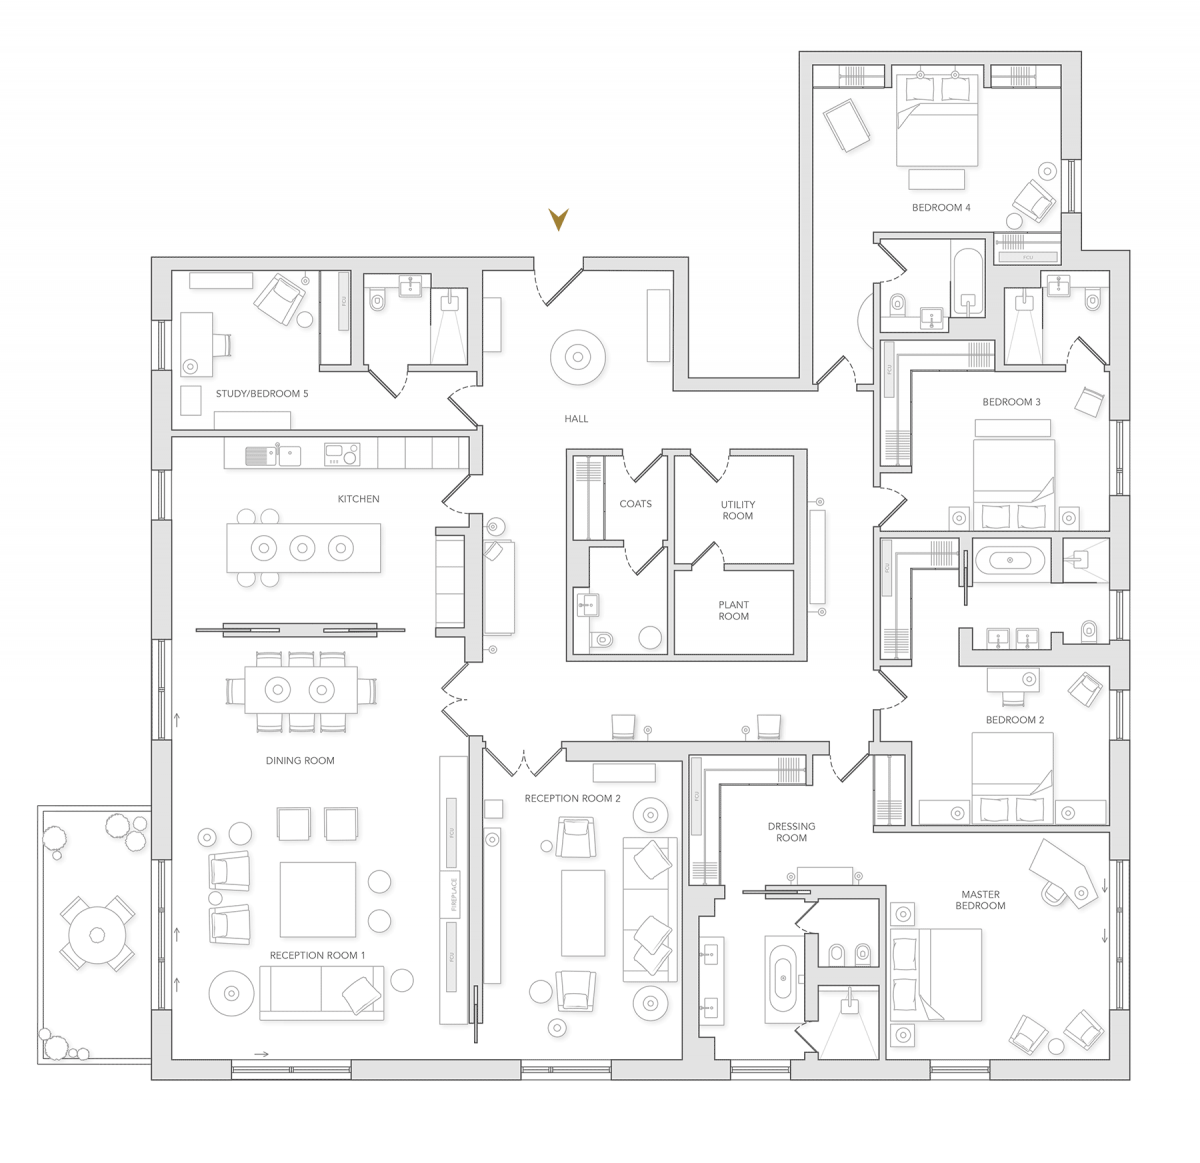 Example Floor Plan of Holland Park Villas Apartments